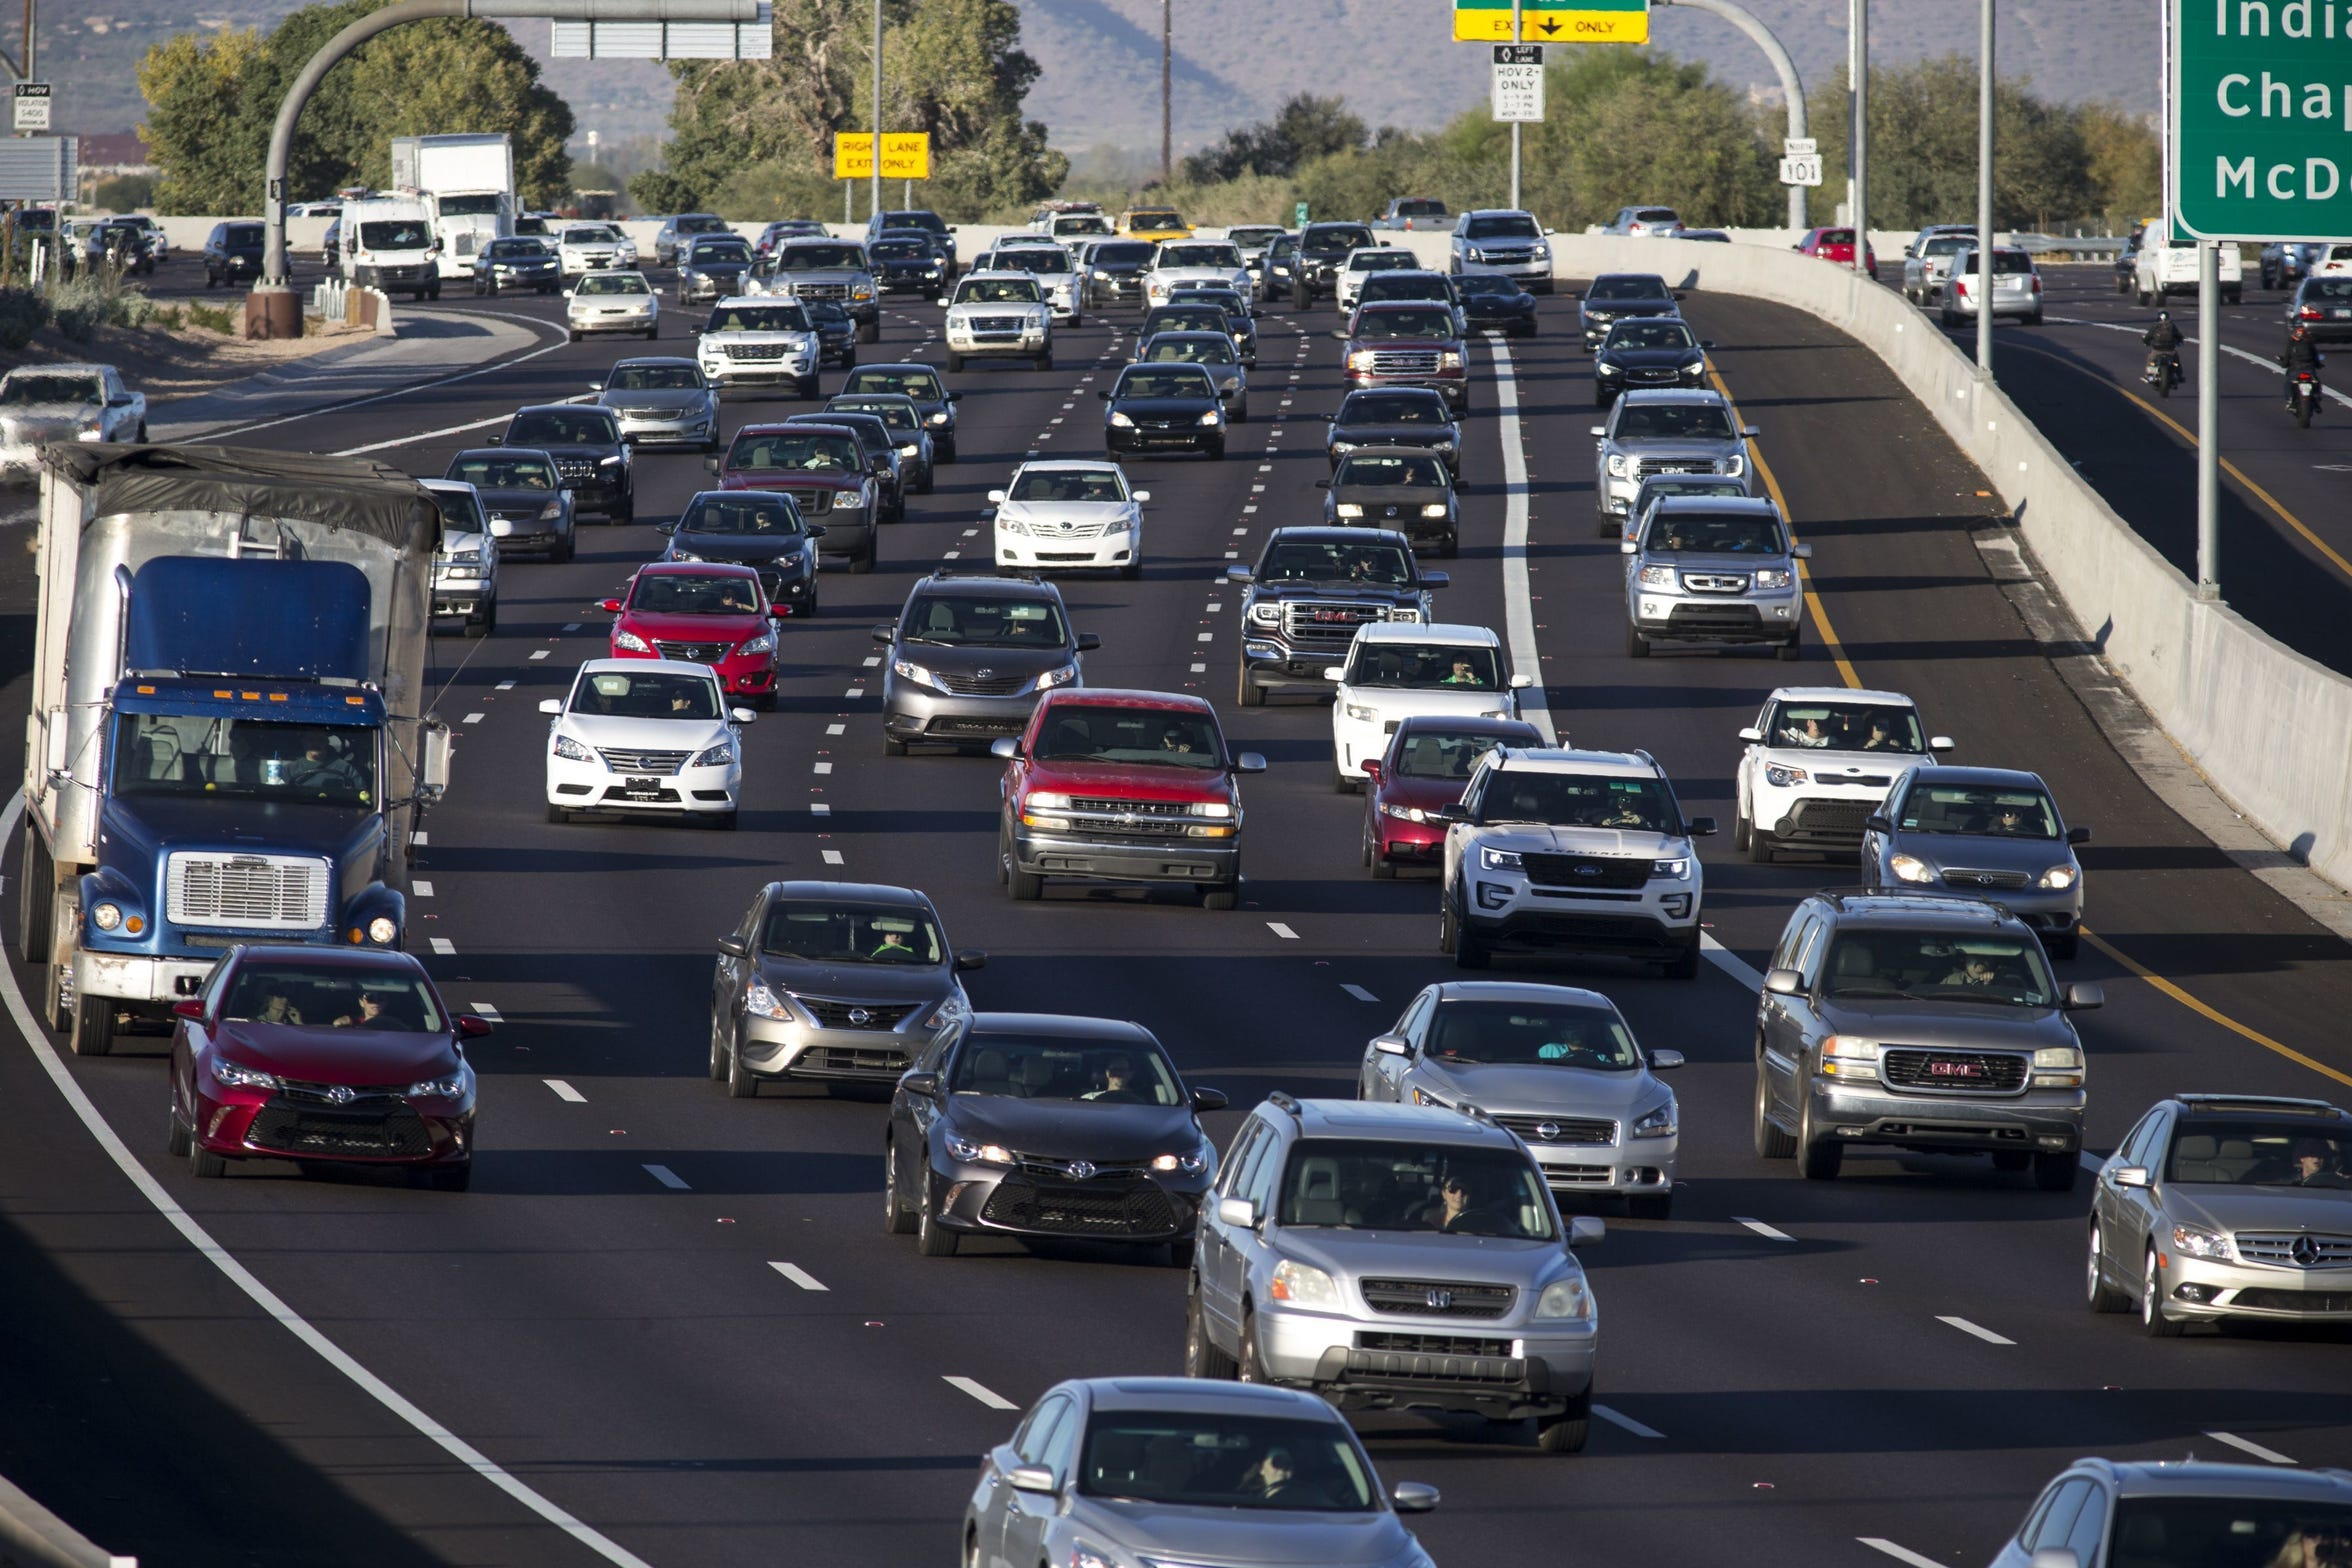 Vehicle traffic contributes significantly to ozone pollution levels and the problem worsens as cars and trucks idle on freeways and roadways.